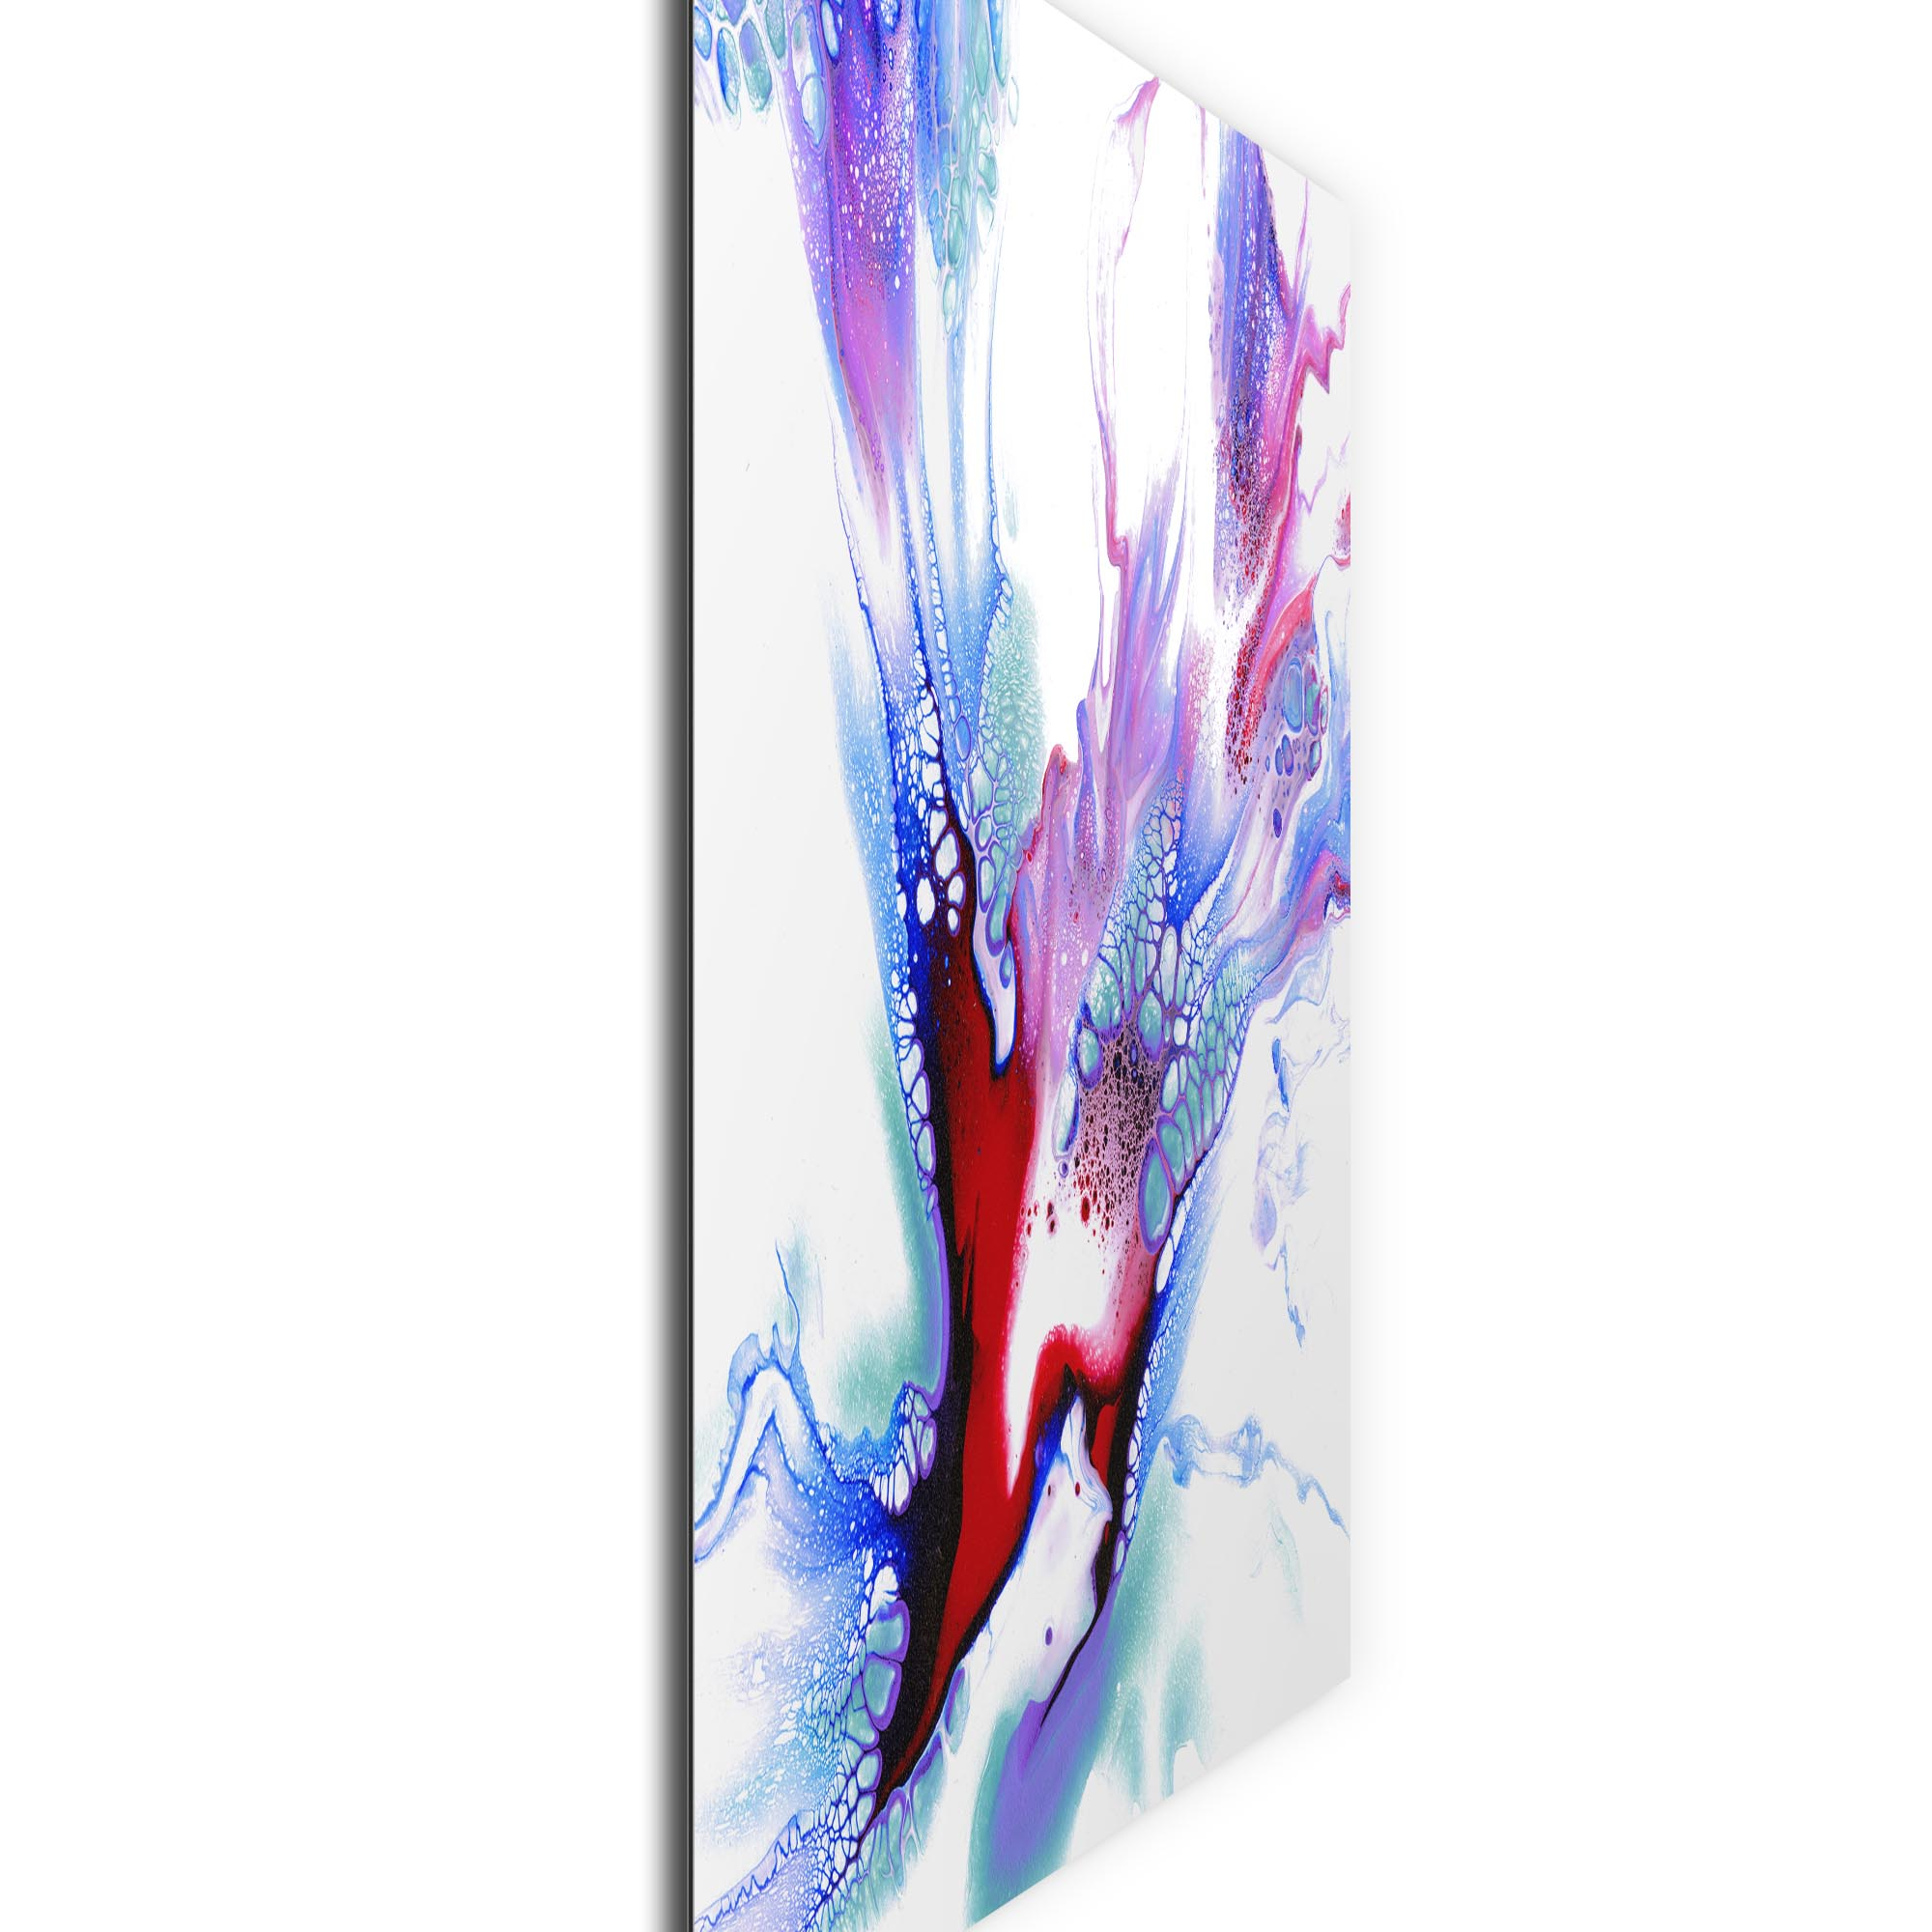 Concealed by Elana Reiter - Abstract Wall Art, Modern Home Decor (36in x 36in) - Image 2